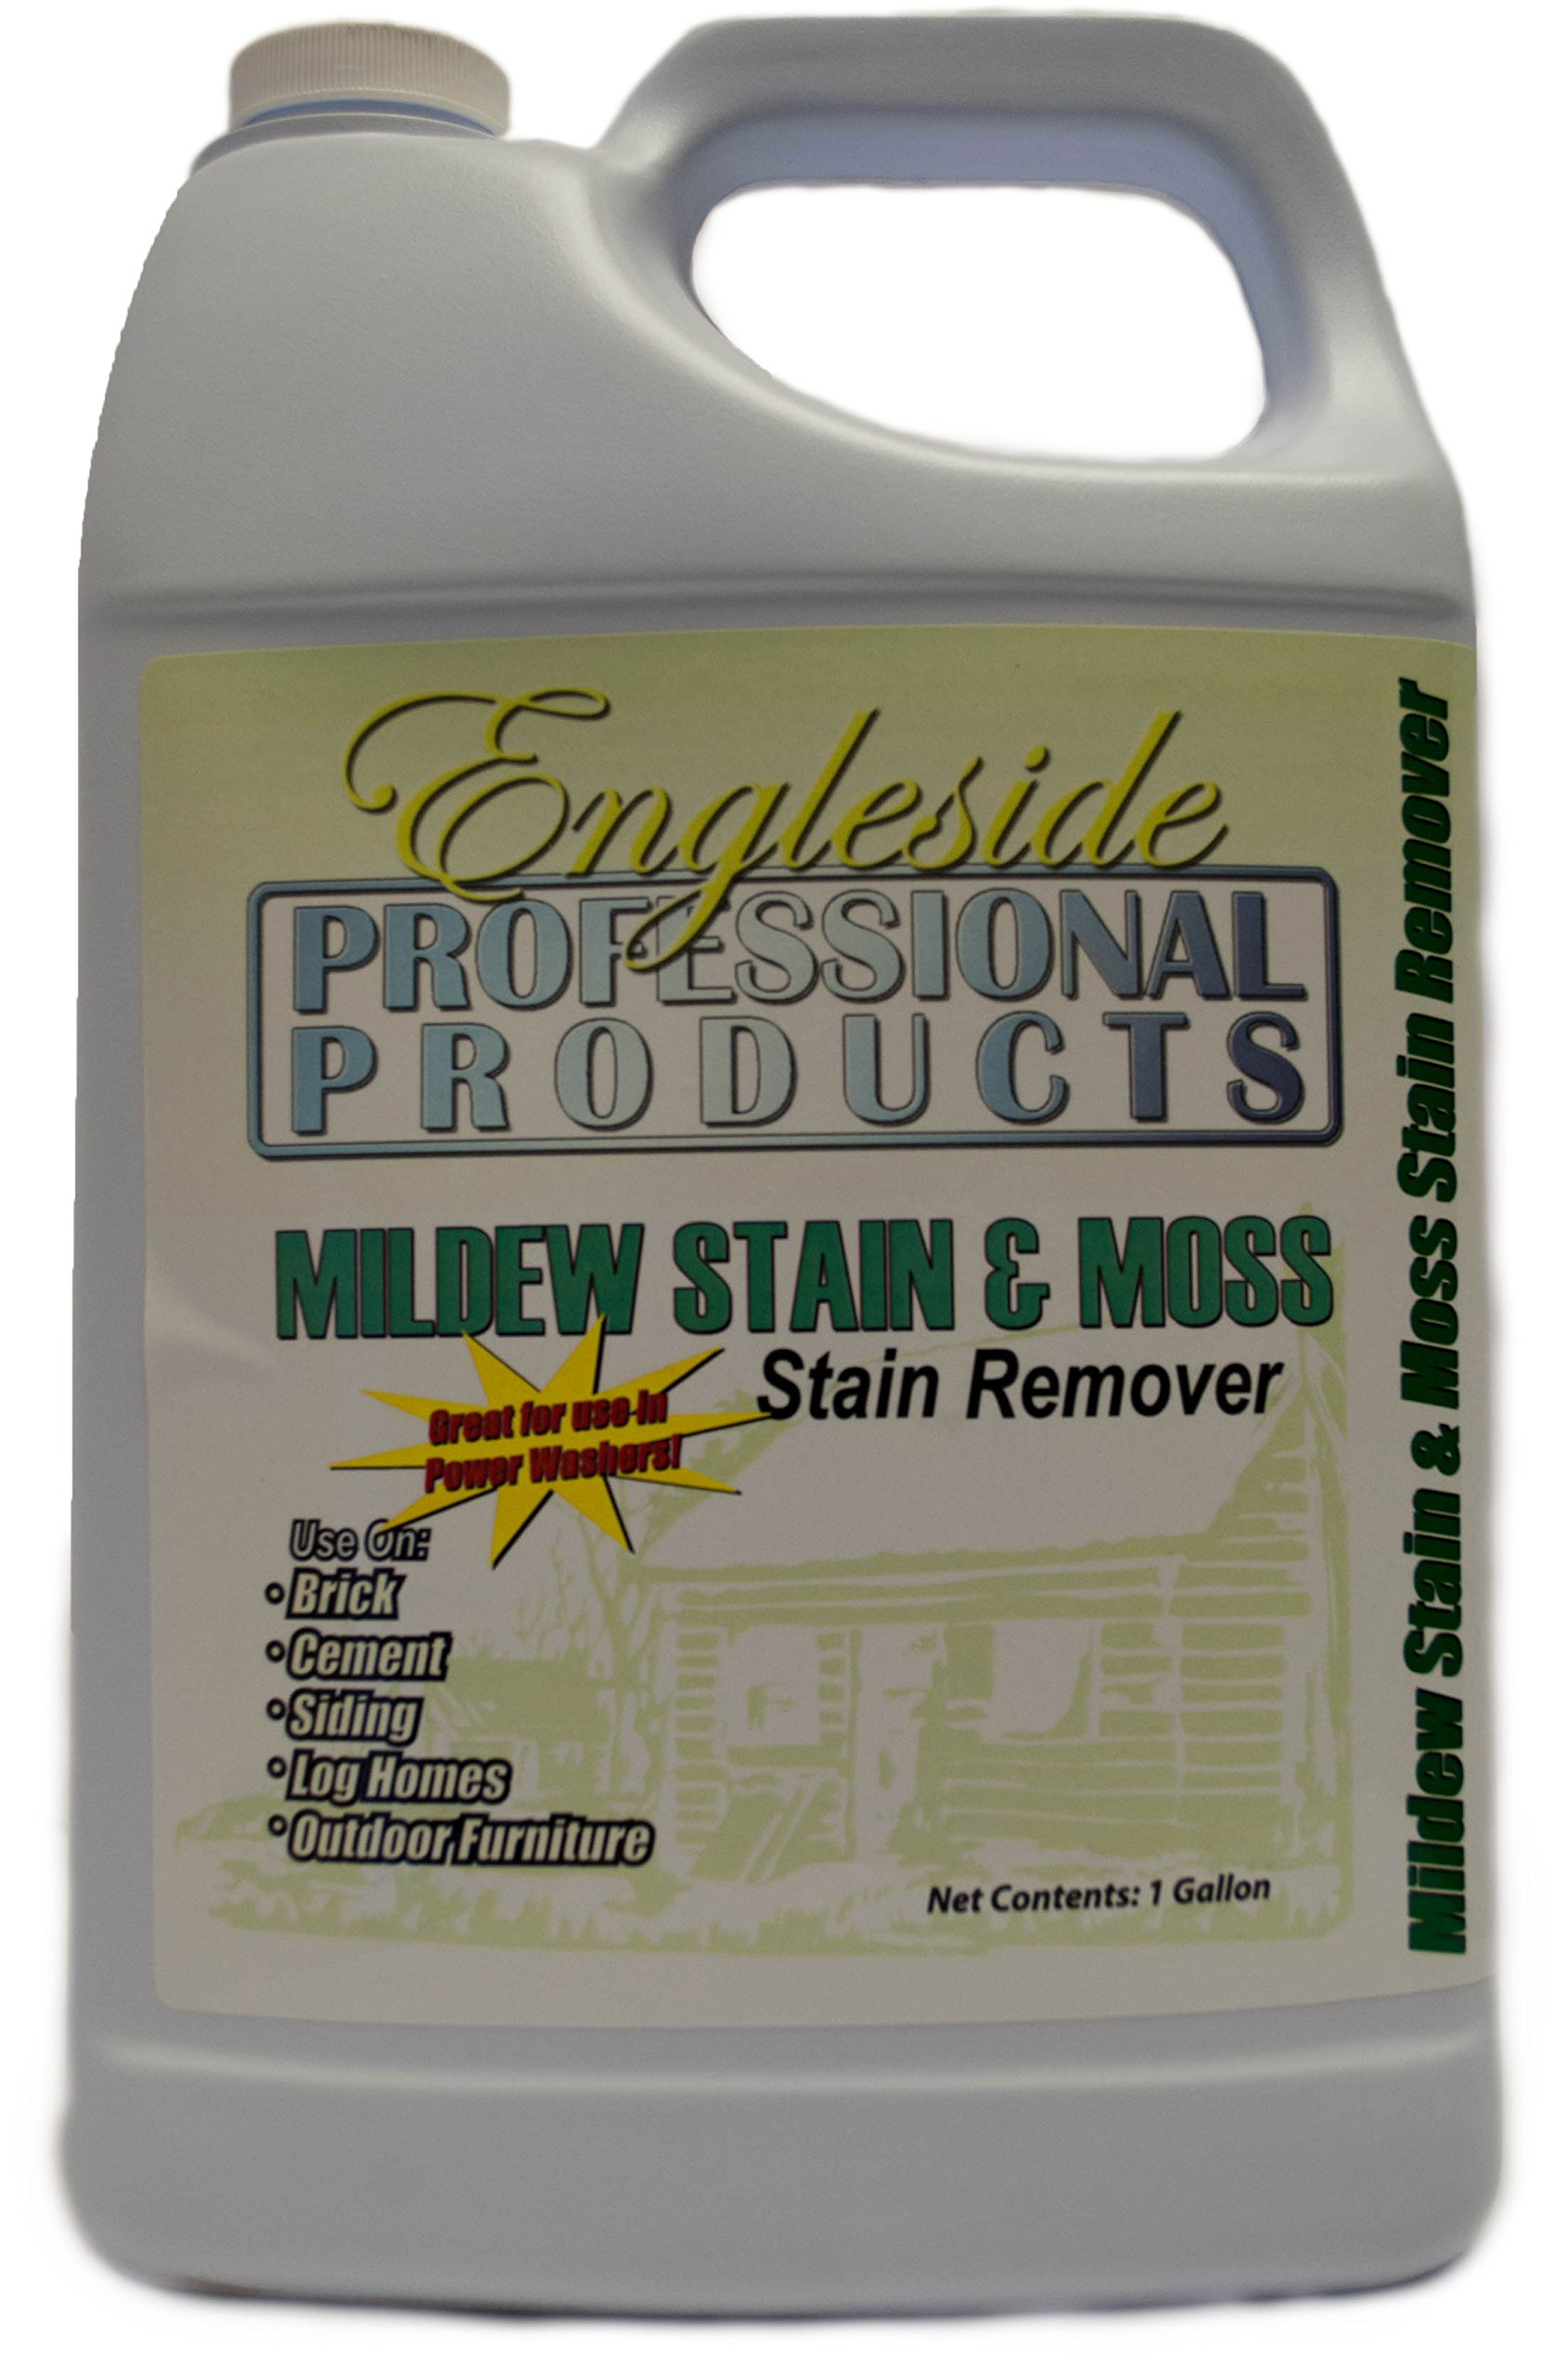 Professional Mildew Stain & Moss Stain Remover by Engleside Products